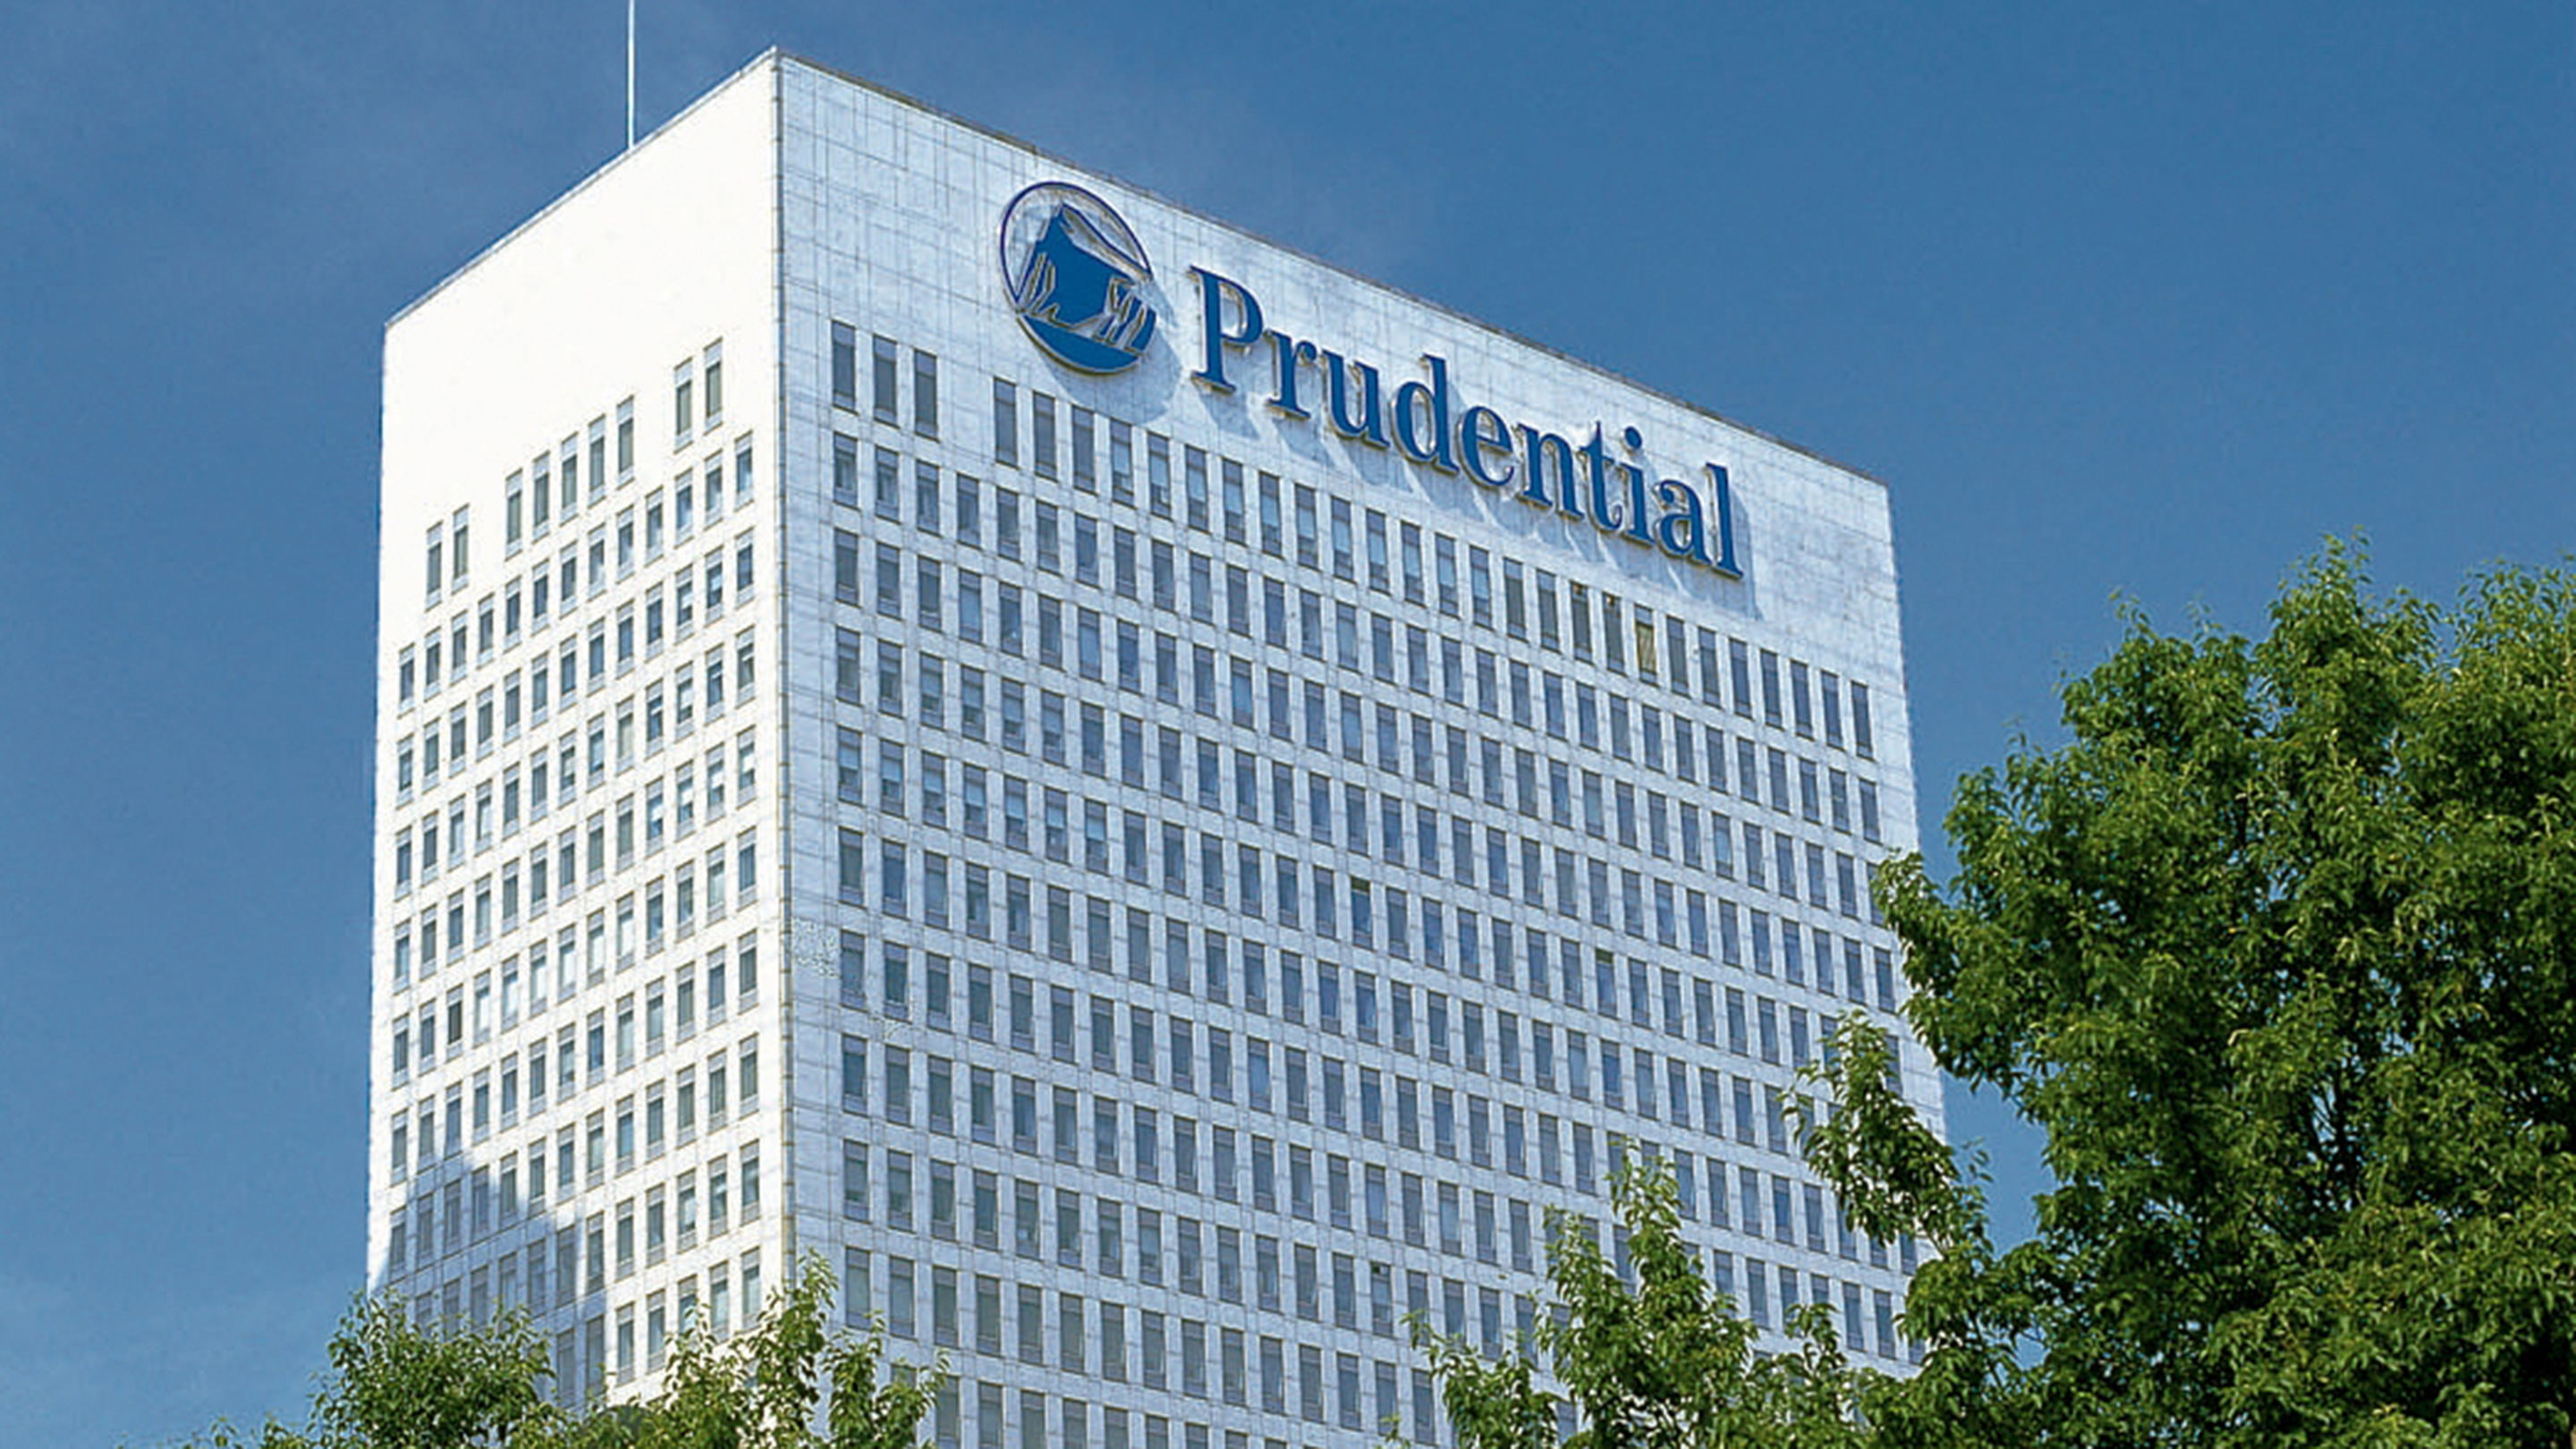 expensive data prudential financial - HD 1600×900